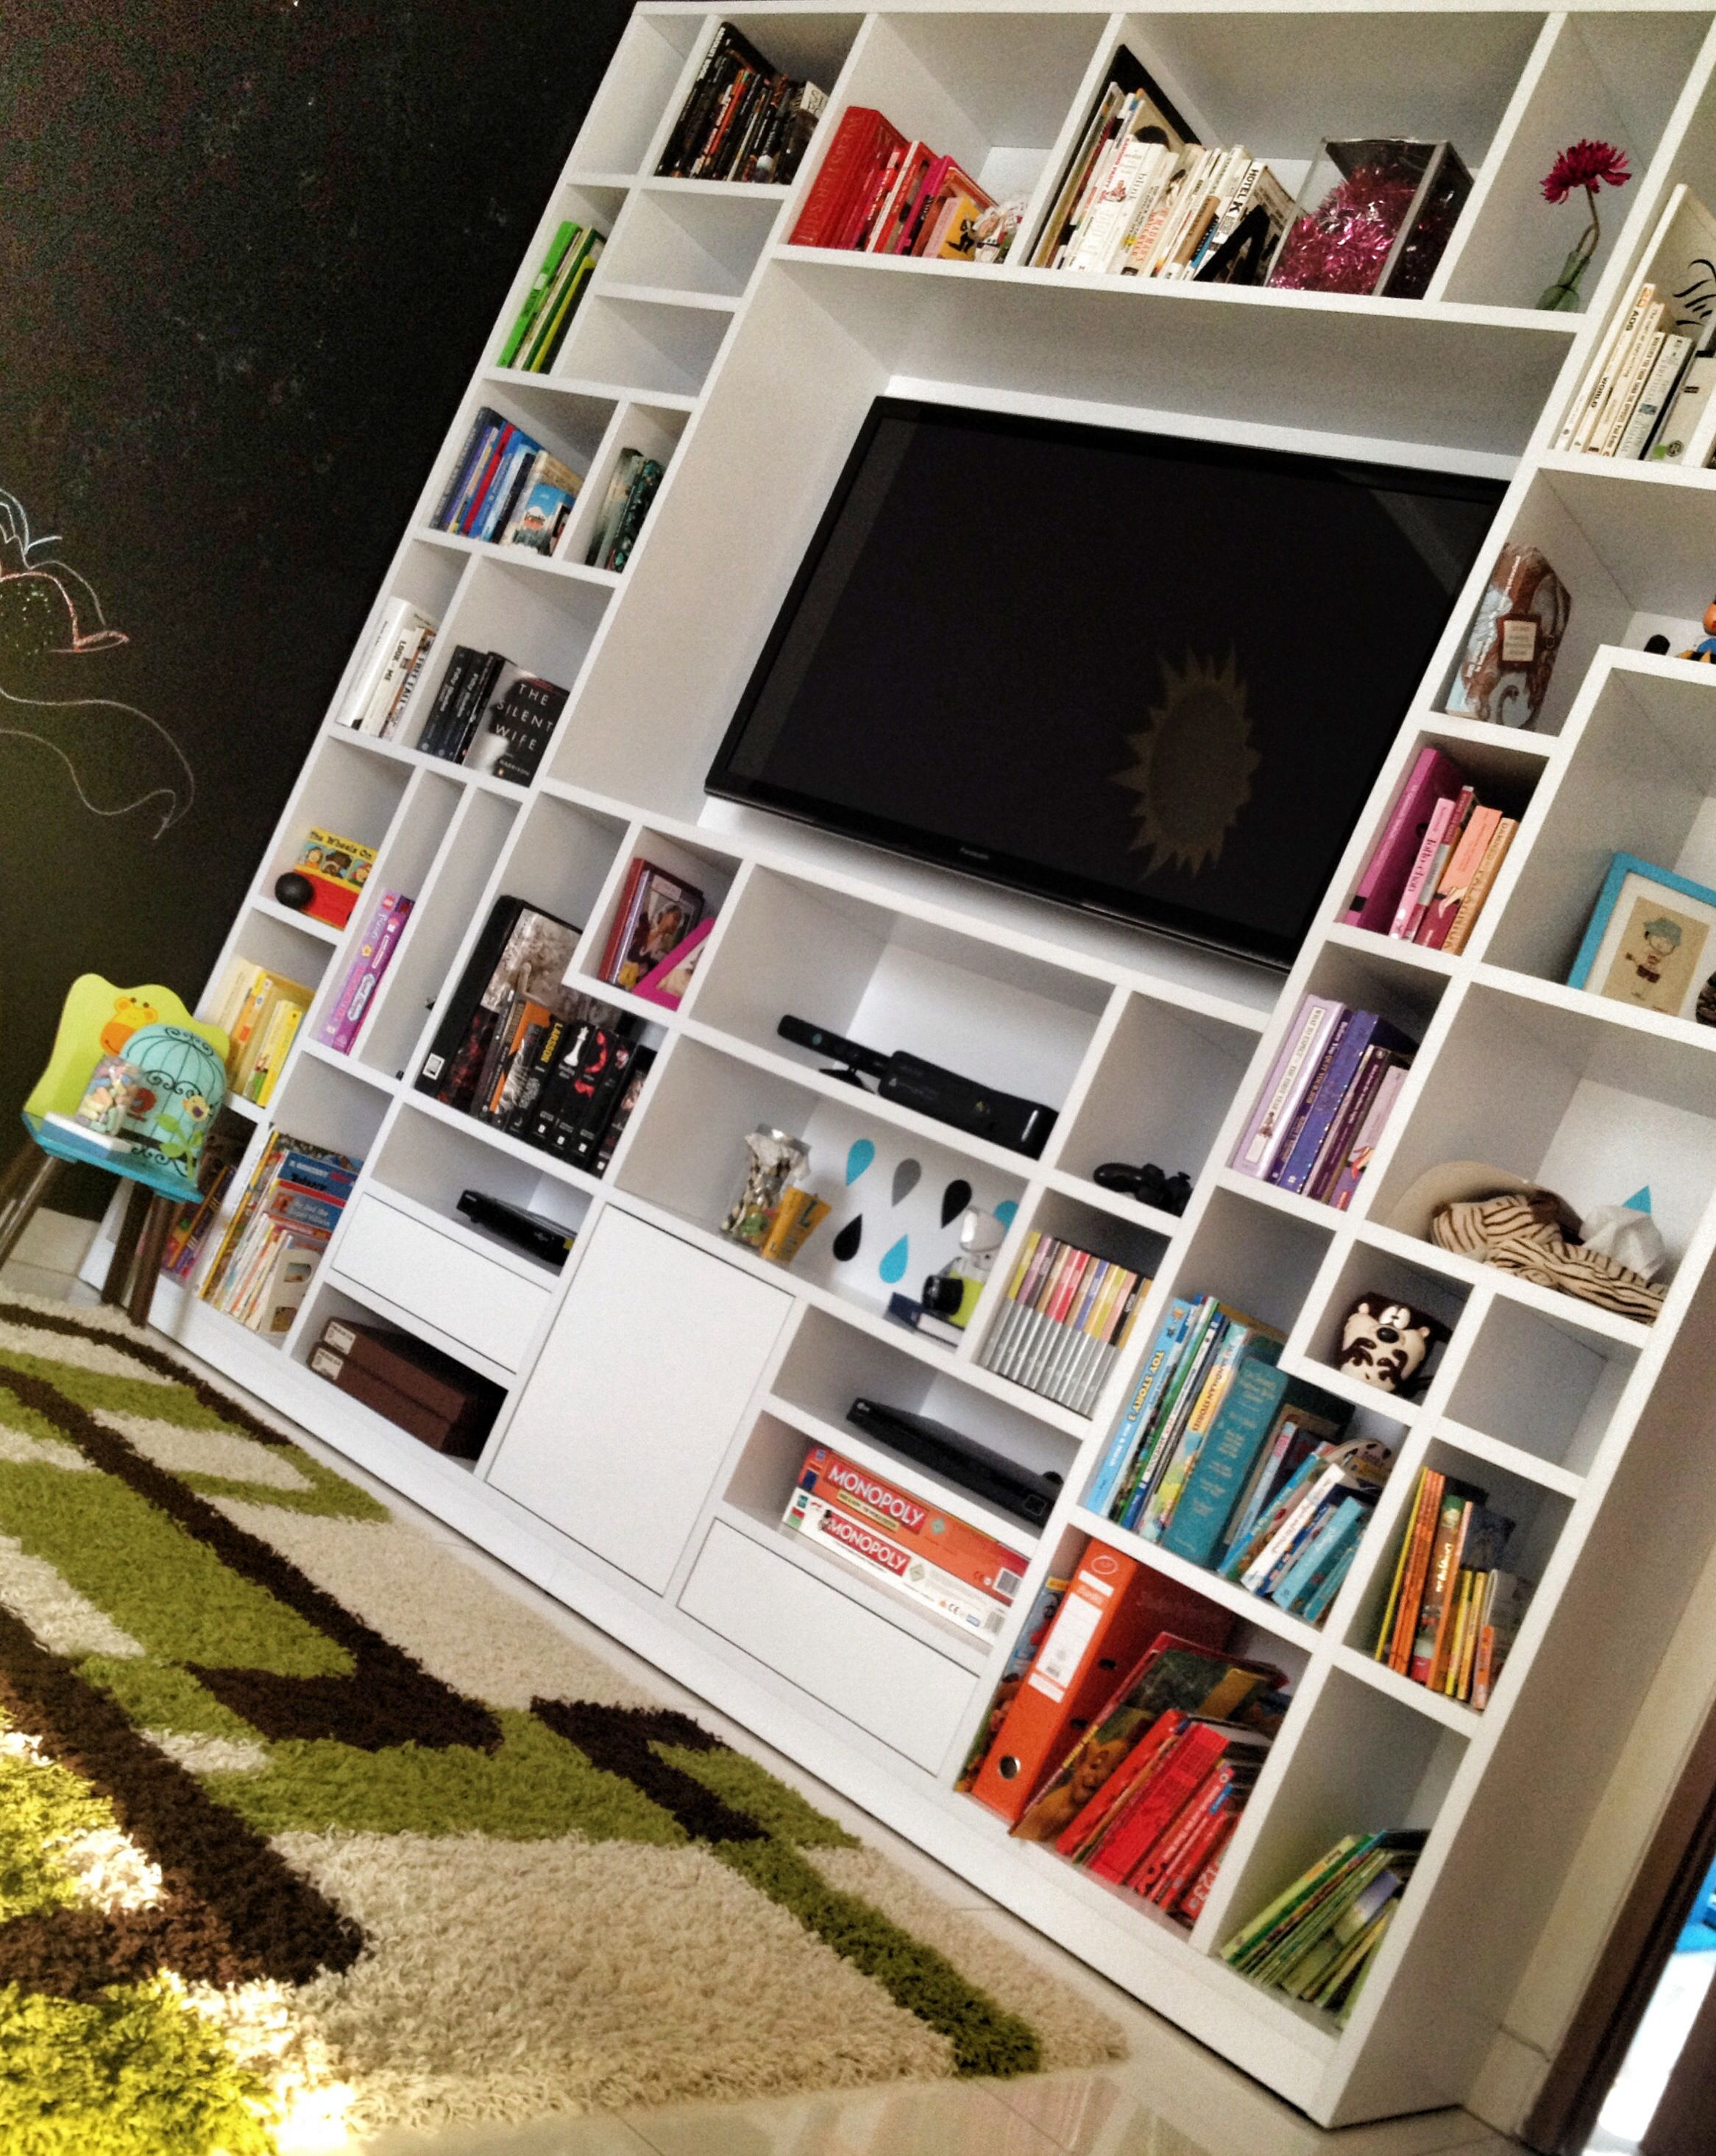 Finally I have a place for my tv and massive space for my books and all those little things!